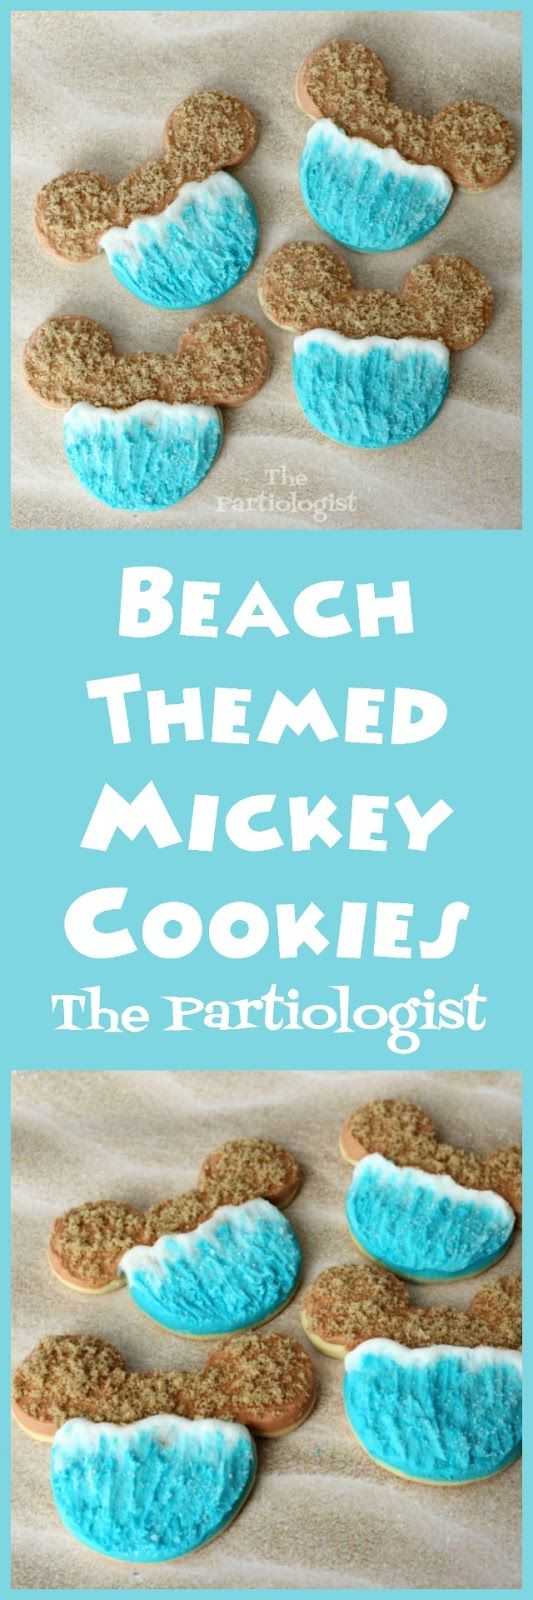 Beach Themed Mickey Mouse Cookies!